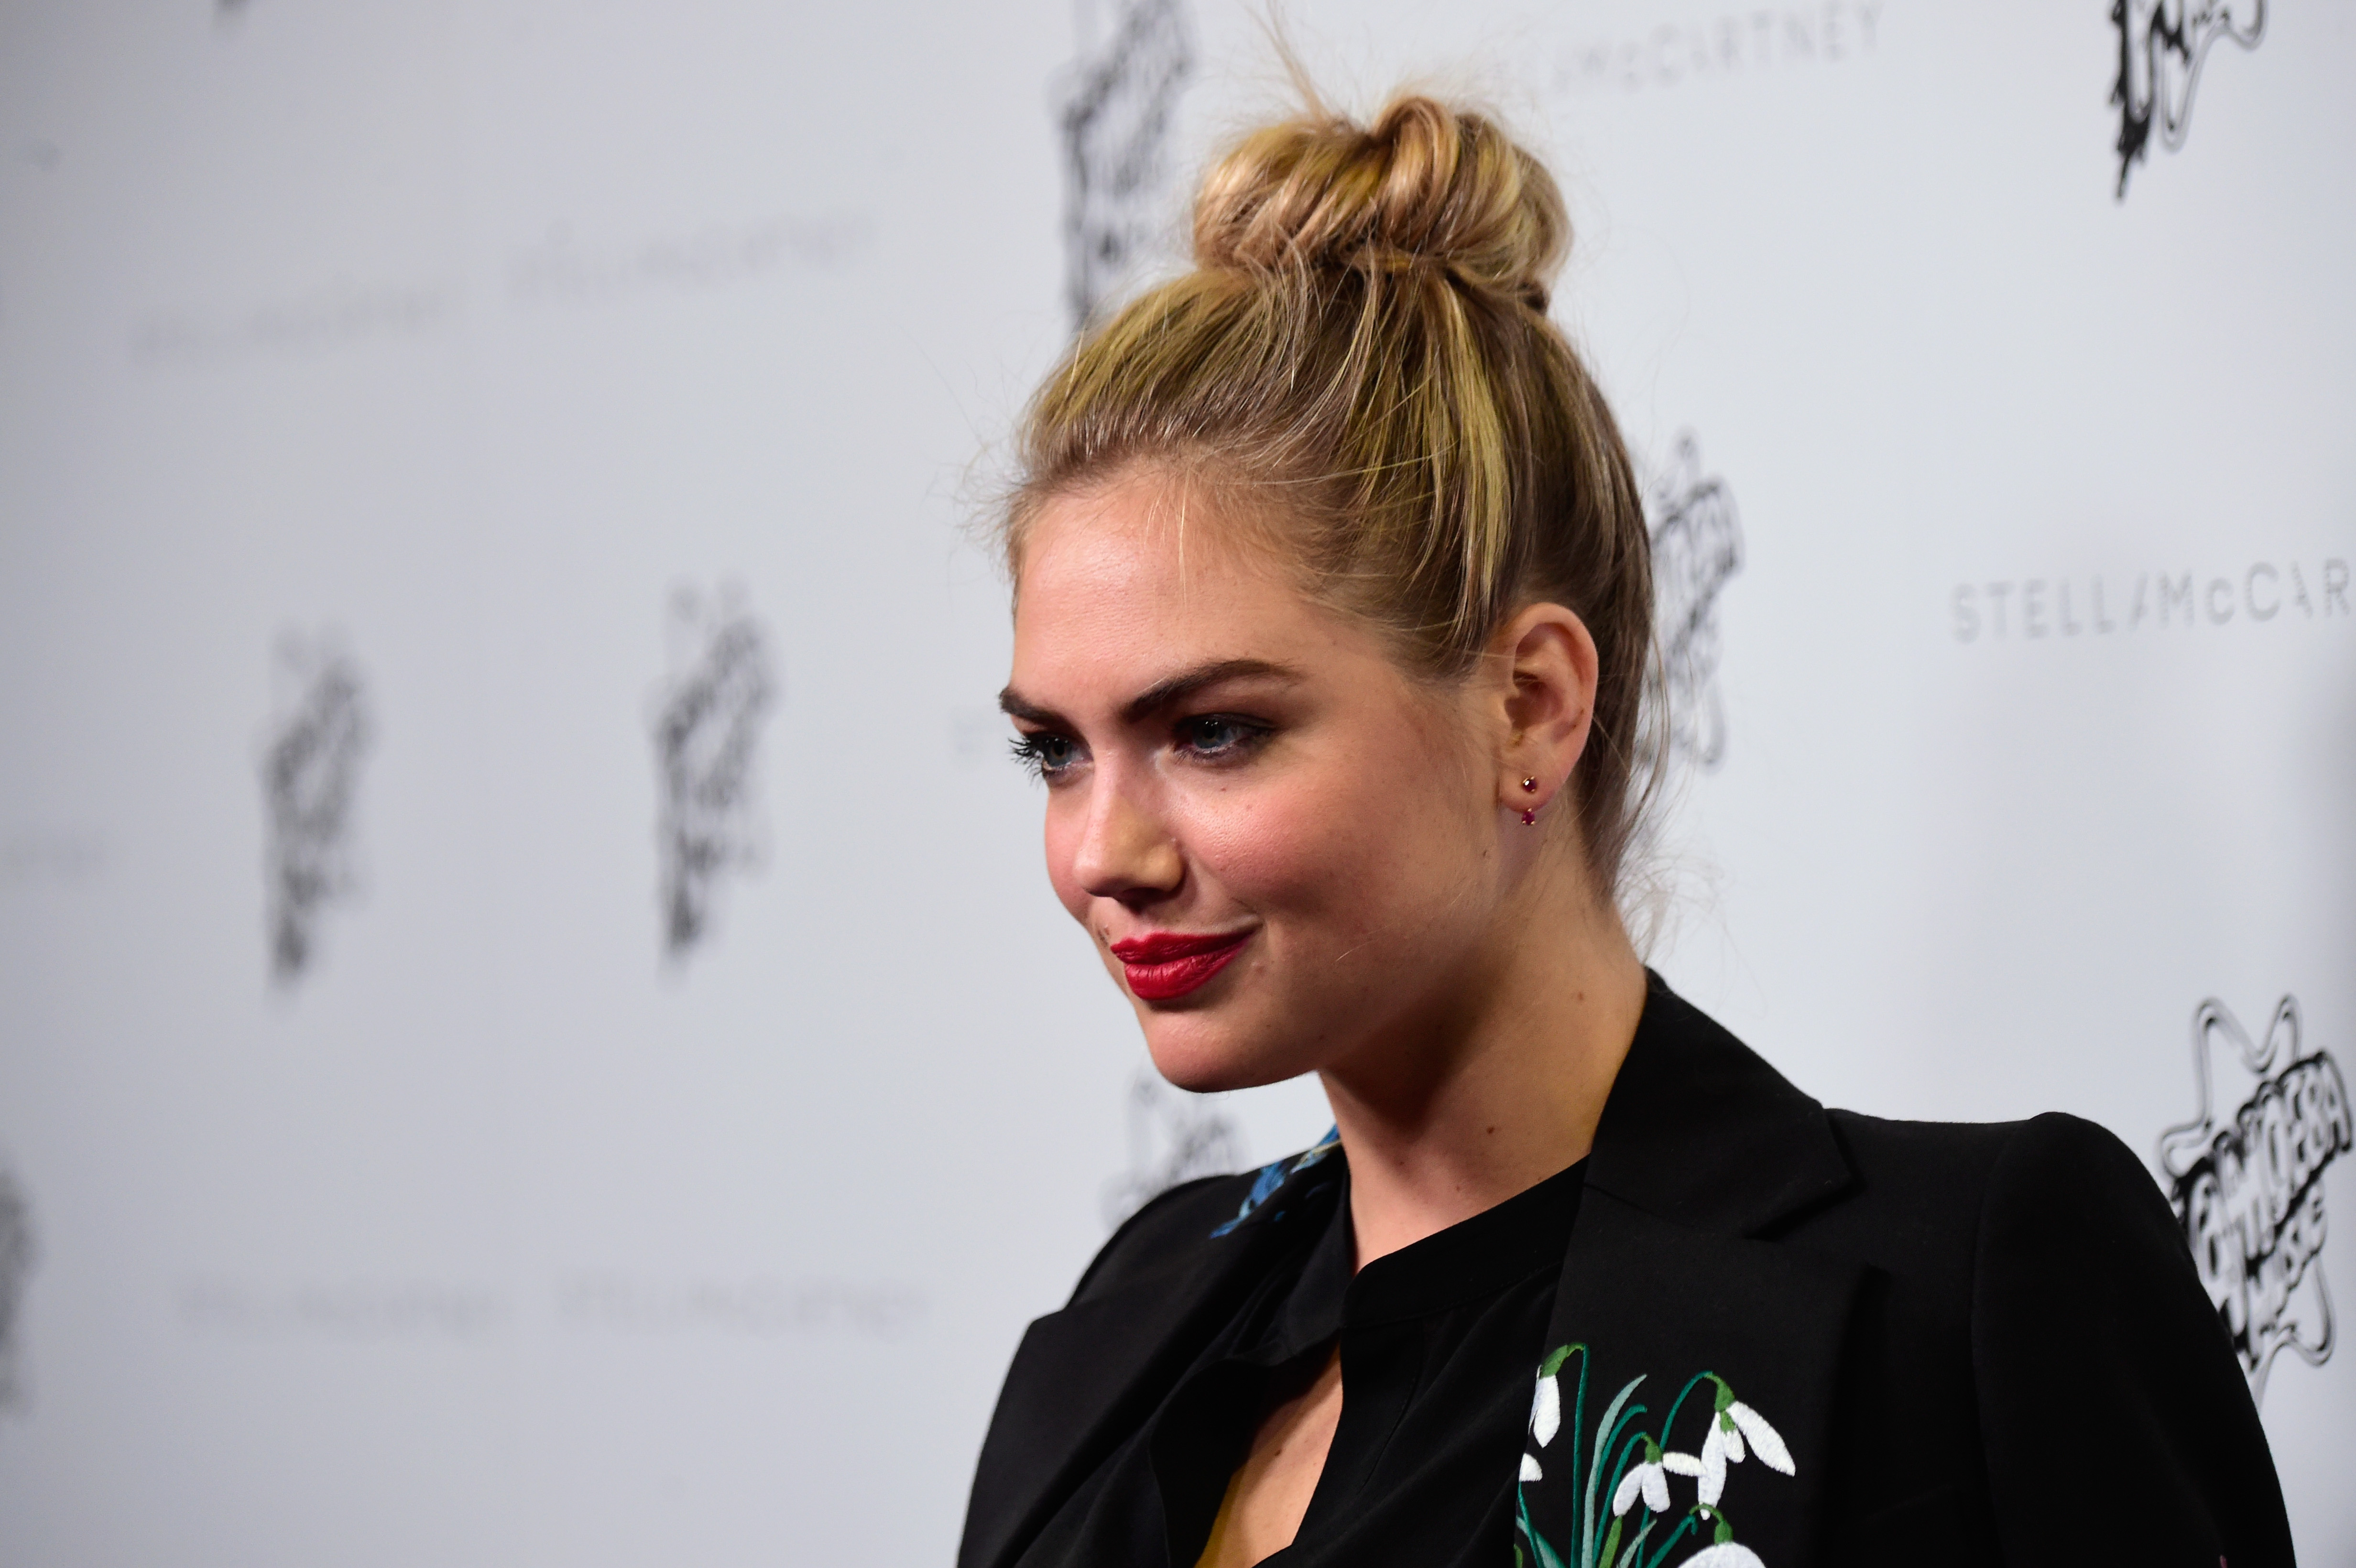 Kate Uptons No Makeup Instagram Shows A Different Side Of The Model - Kate-upton-no-makeup